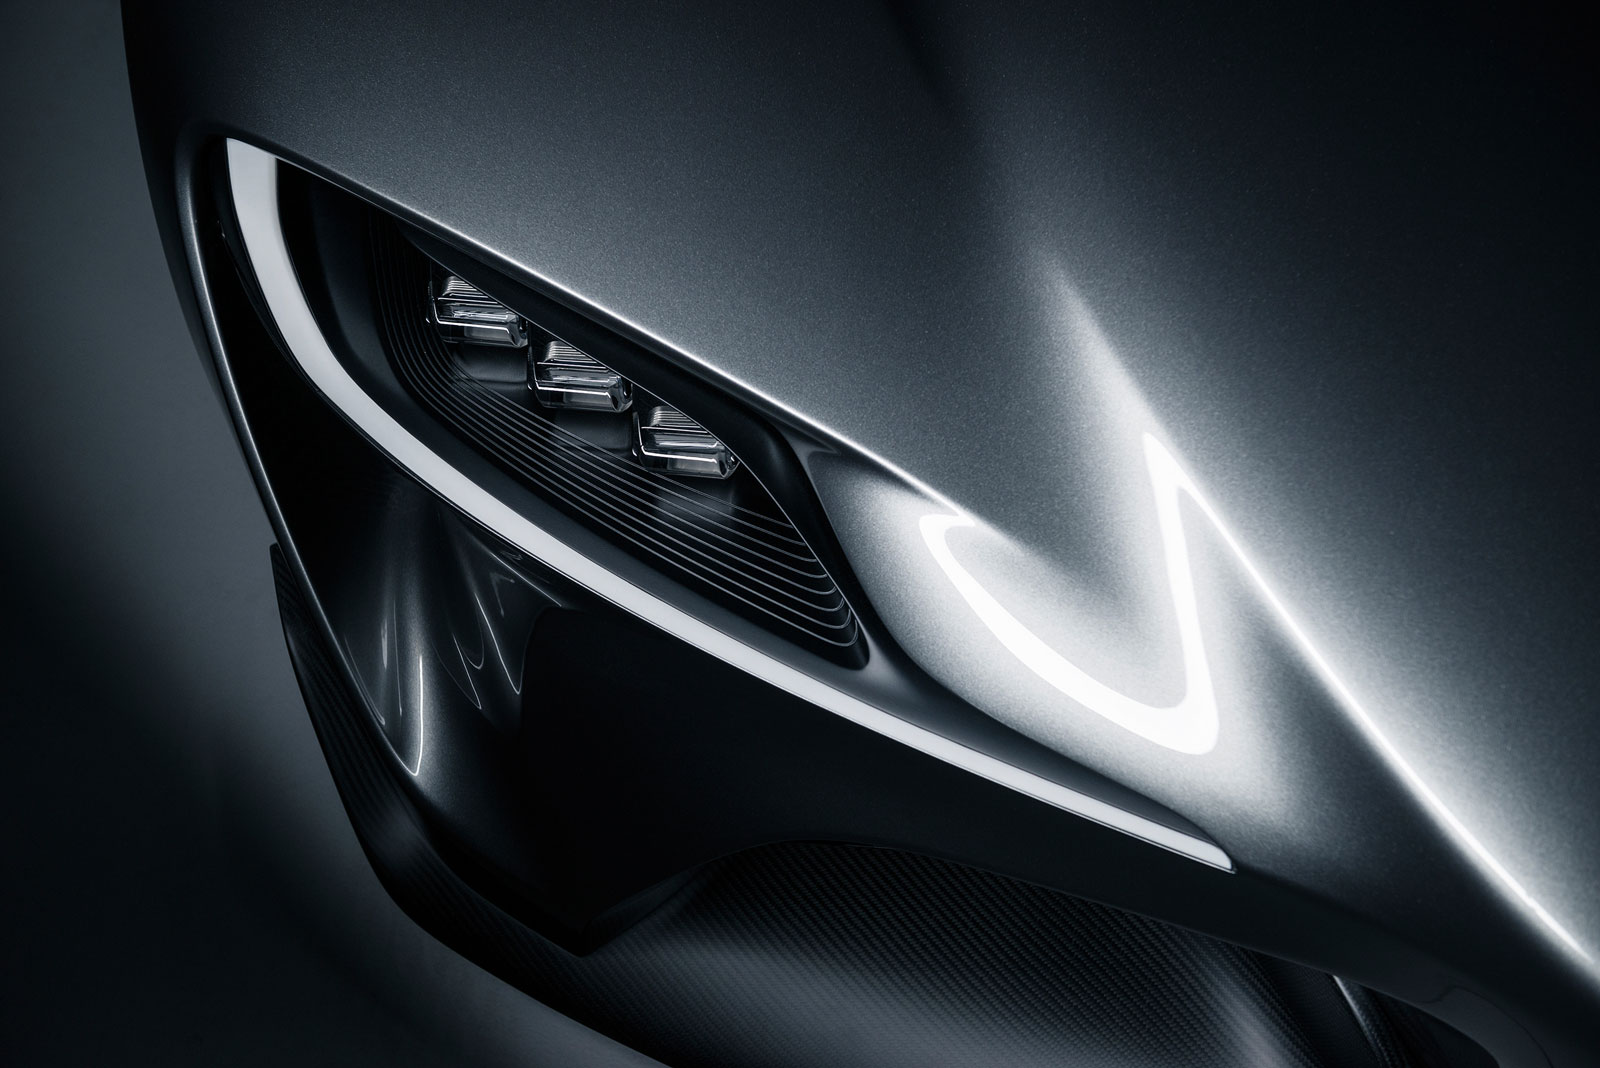 02-Toyota-FT-1-Graphite-Concept-Headlight.jpg (JPEG Image, 1600 × 1068 pixels) - Scaled (80%)